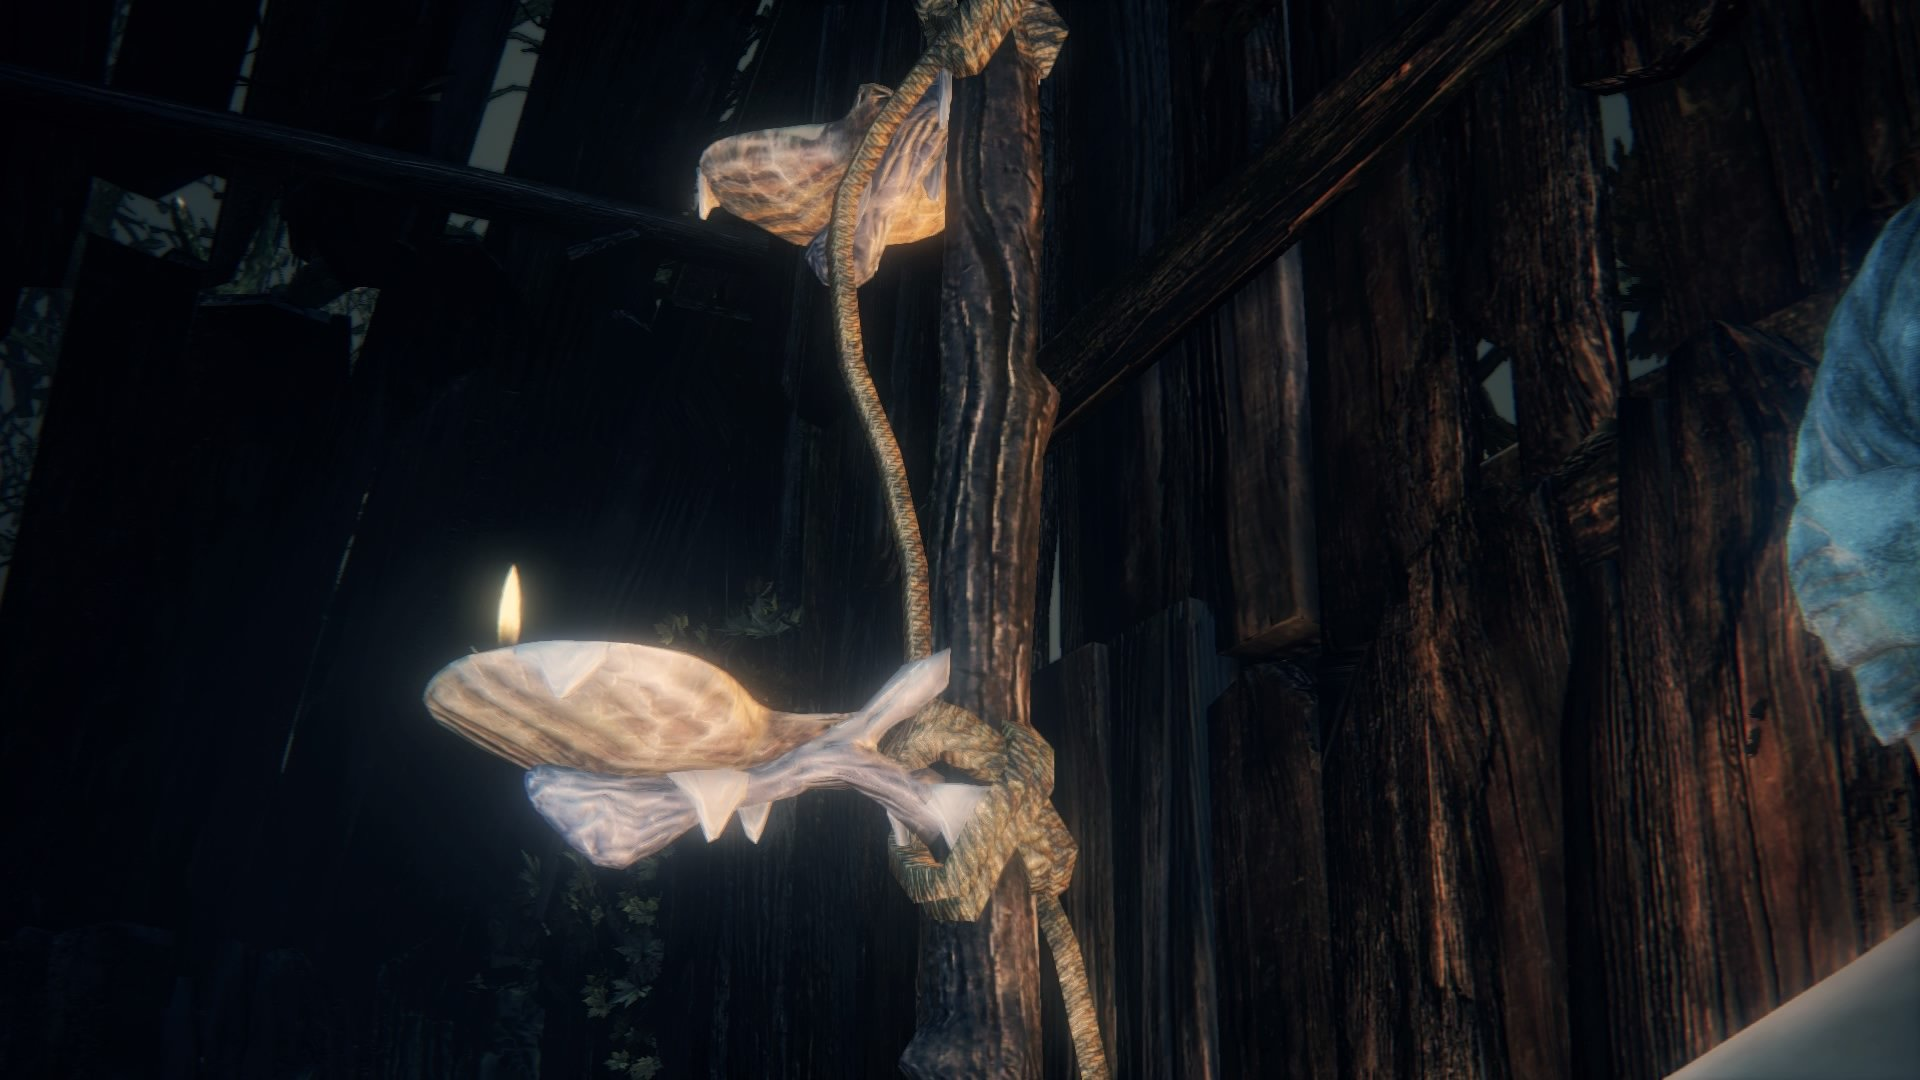 kos mother bloodborne wiki oil lights and explosive barrels